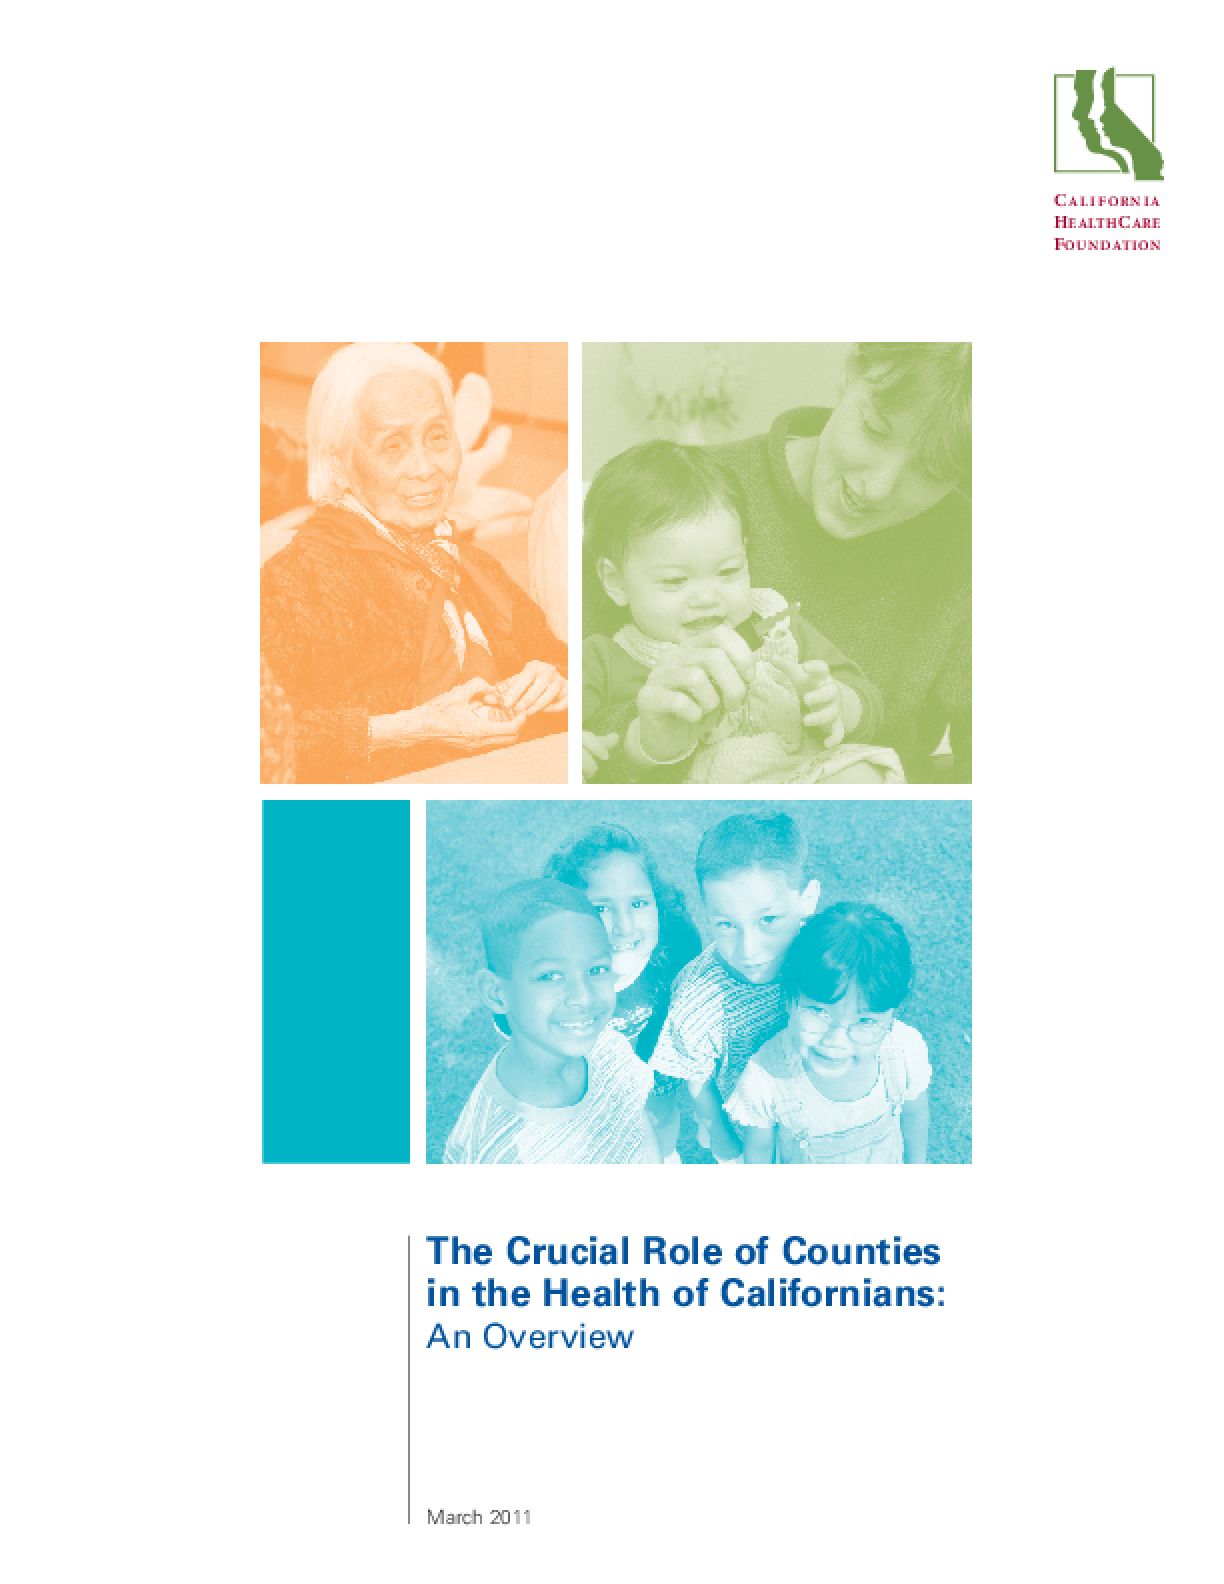 The Crucial Role of Counties in the Health of Californians: An Overview